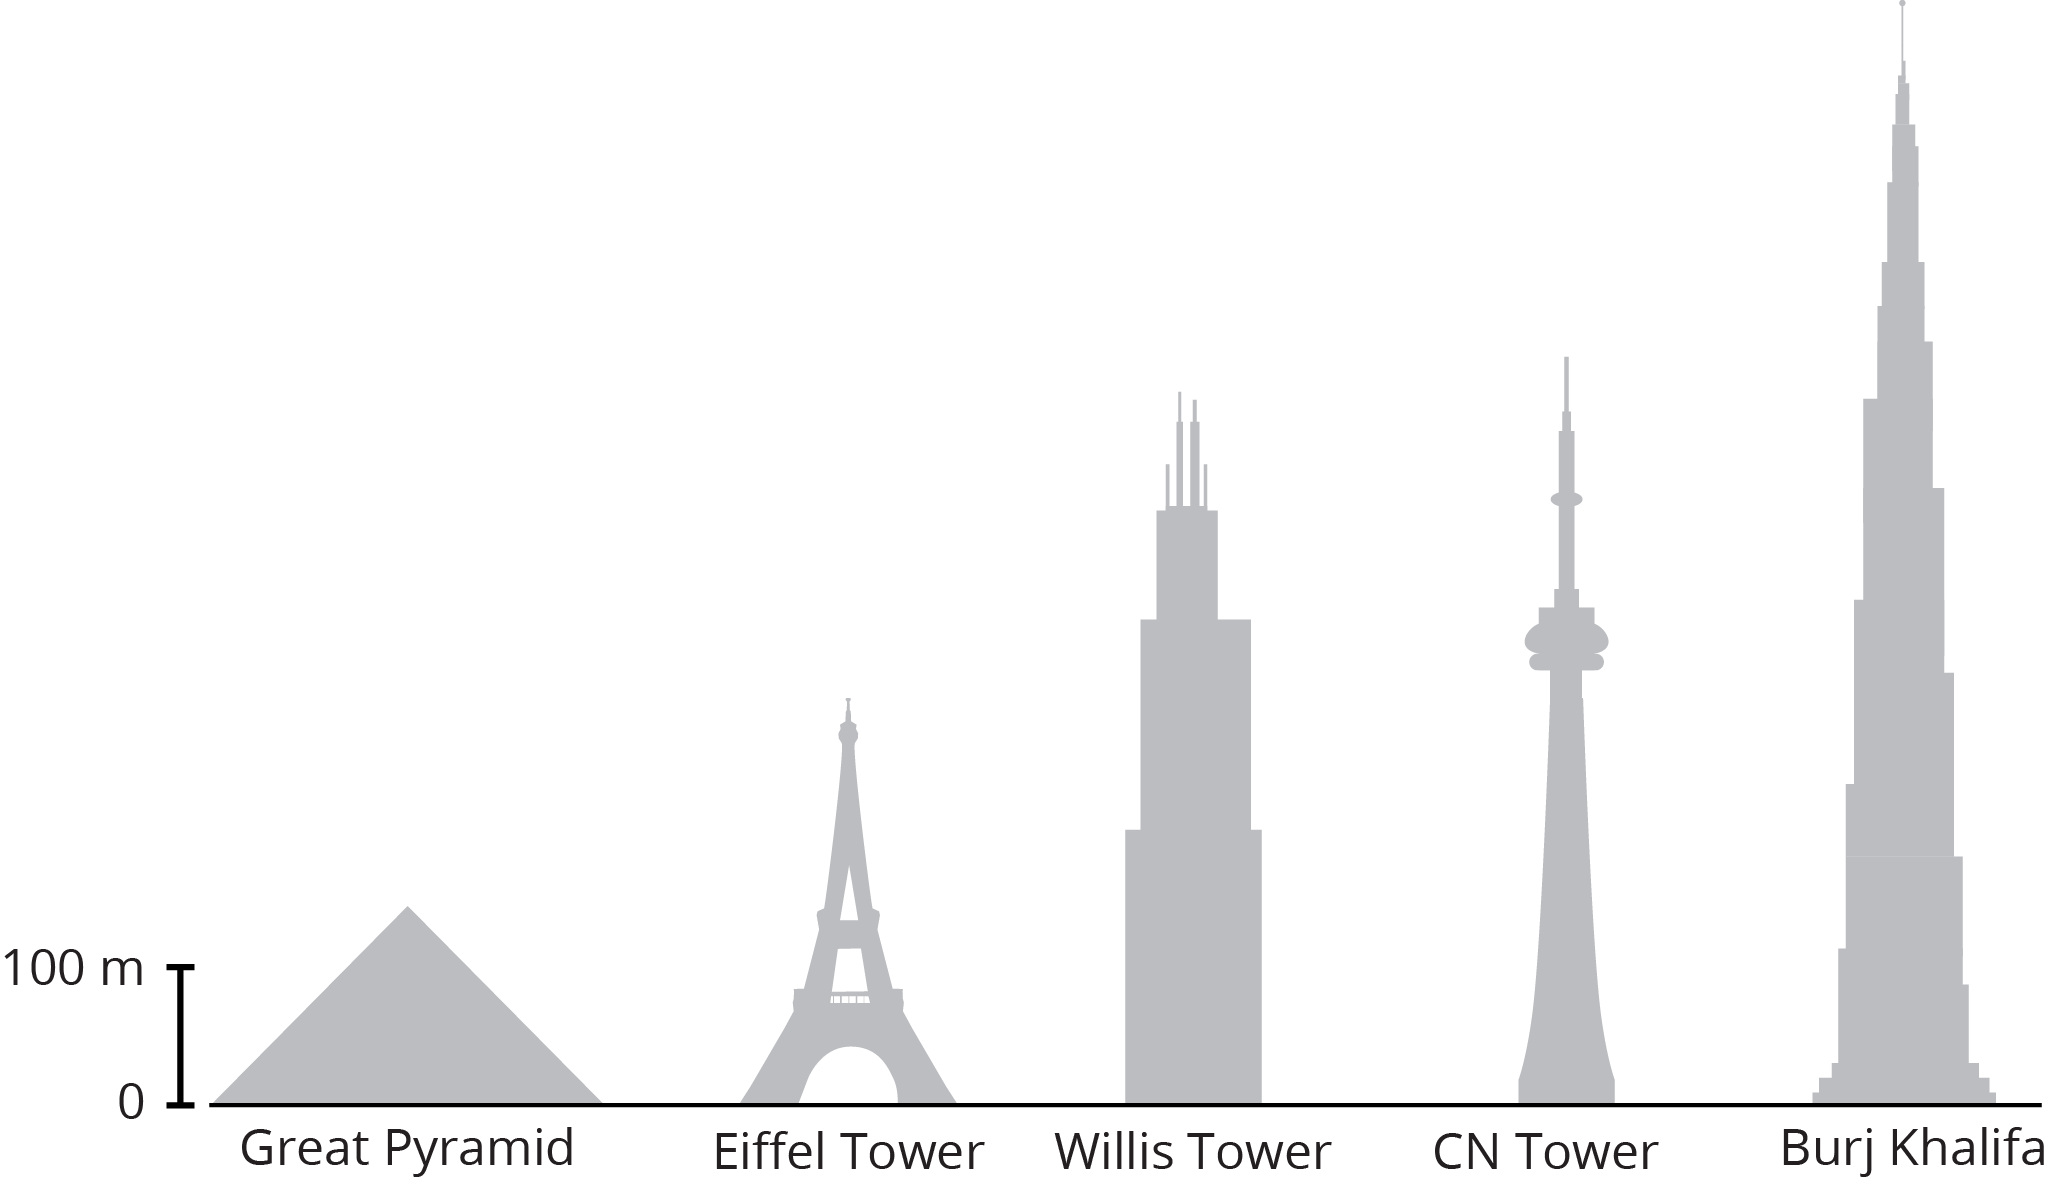 Structures shown from shortest to tallest are, Great Pyramid, Eiffel Tower, Willis Tower, CN Tower, Burj Khalifa.